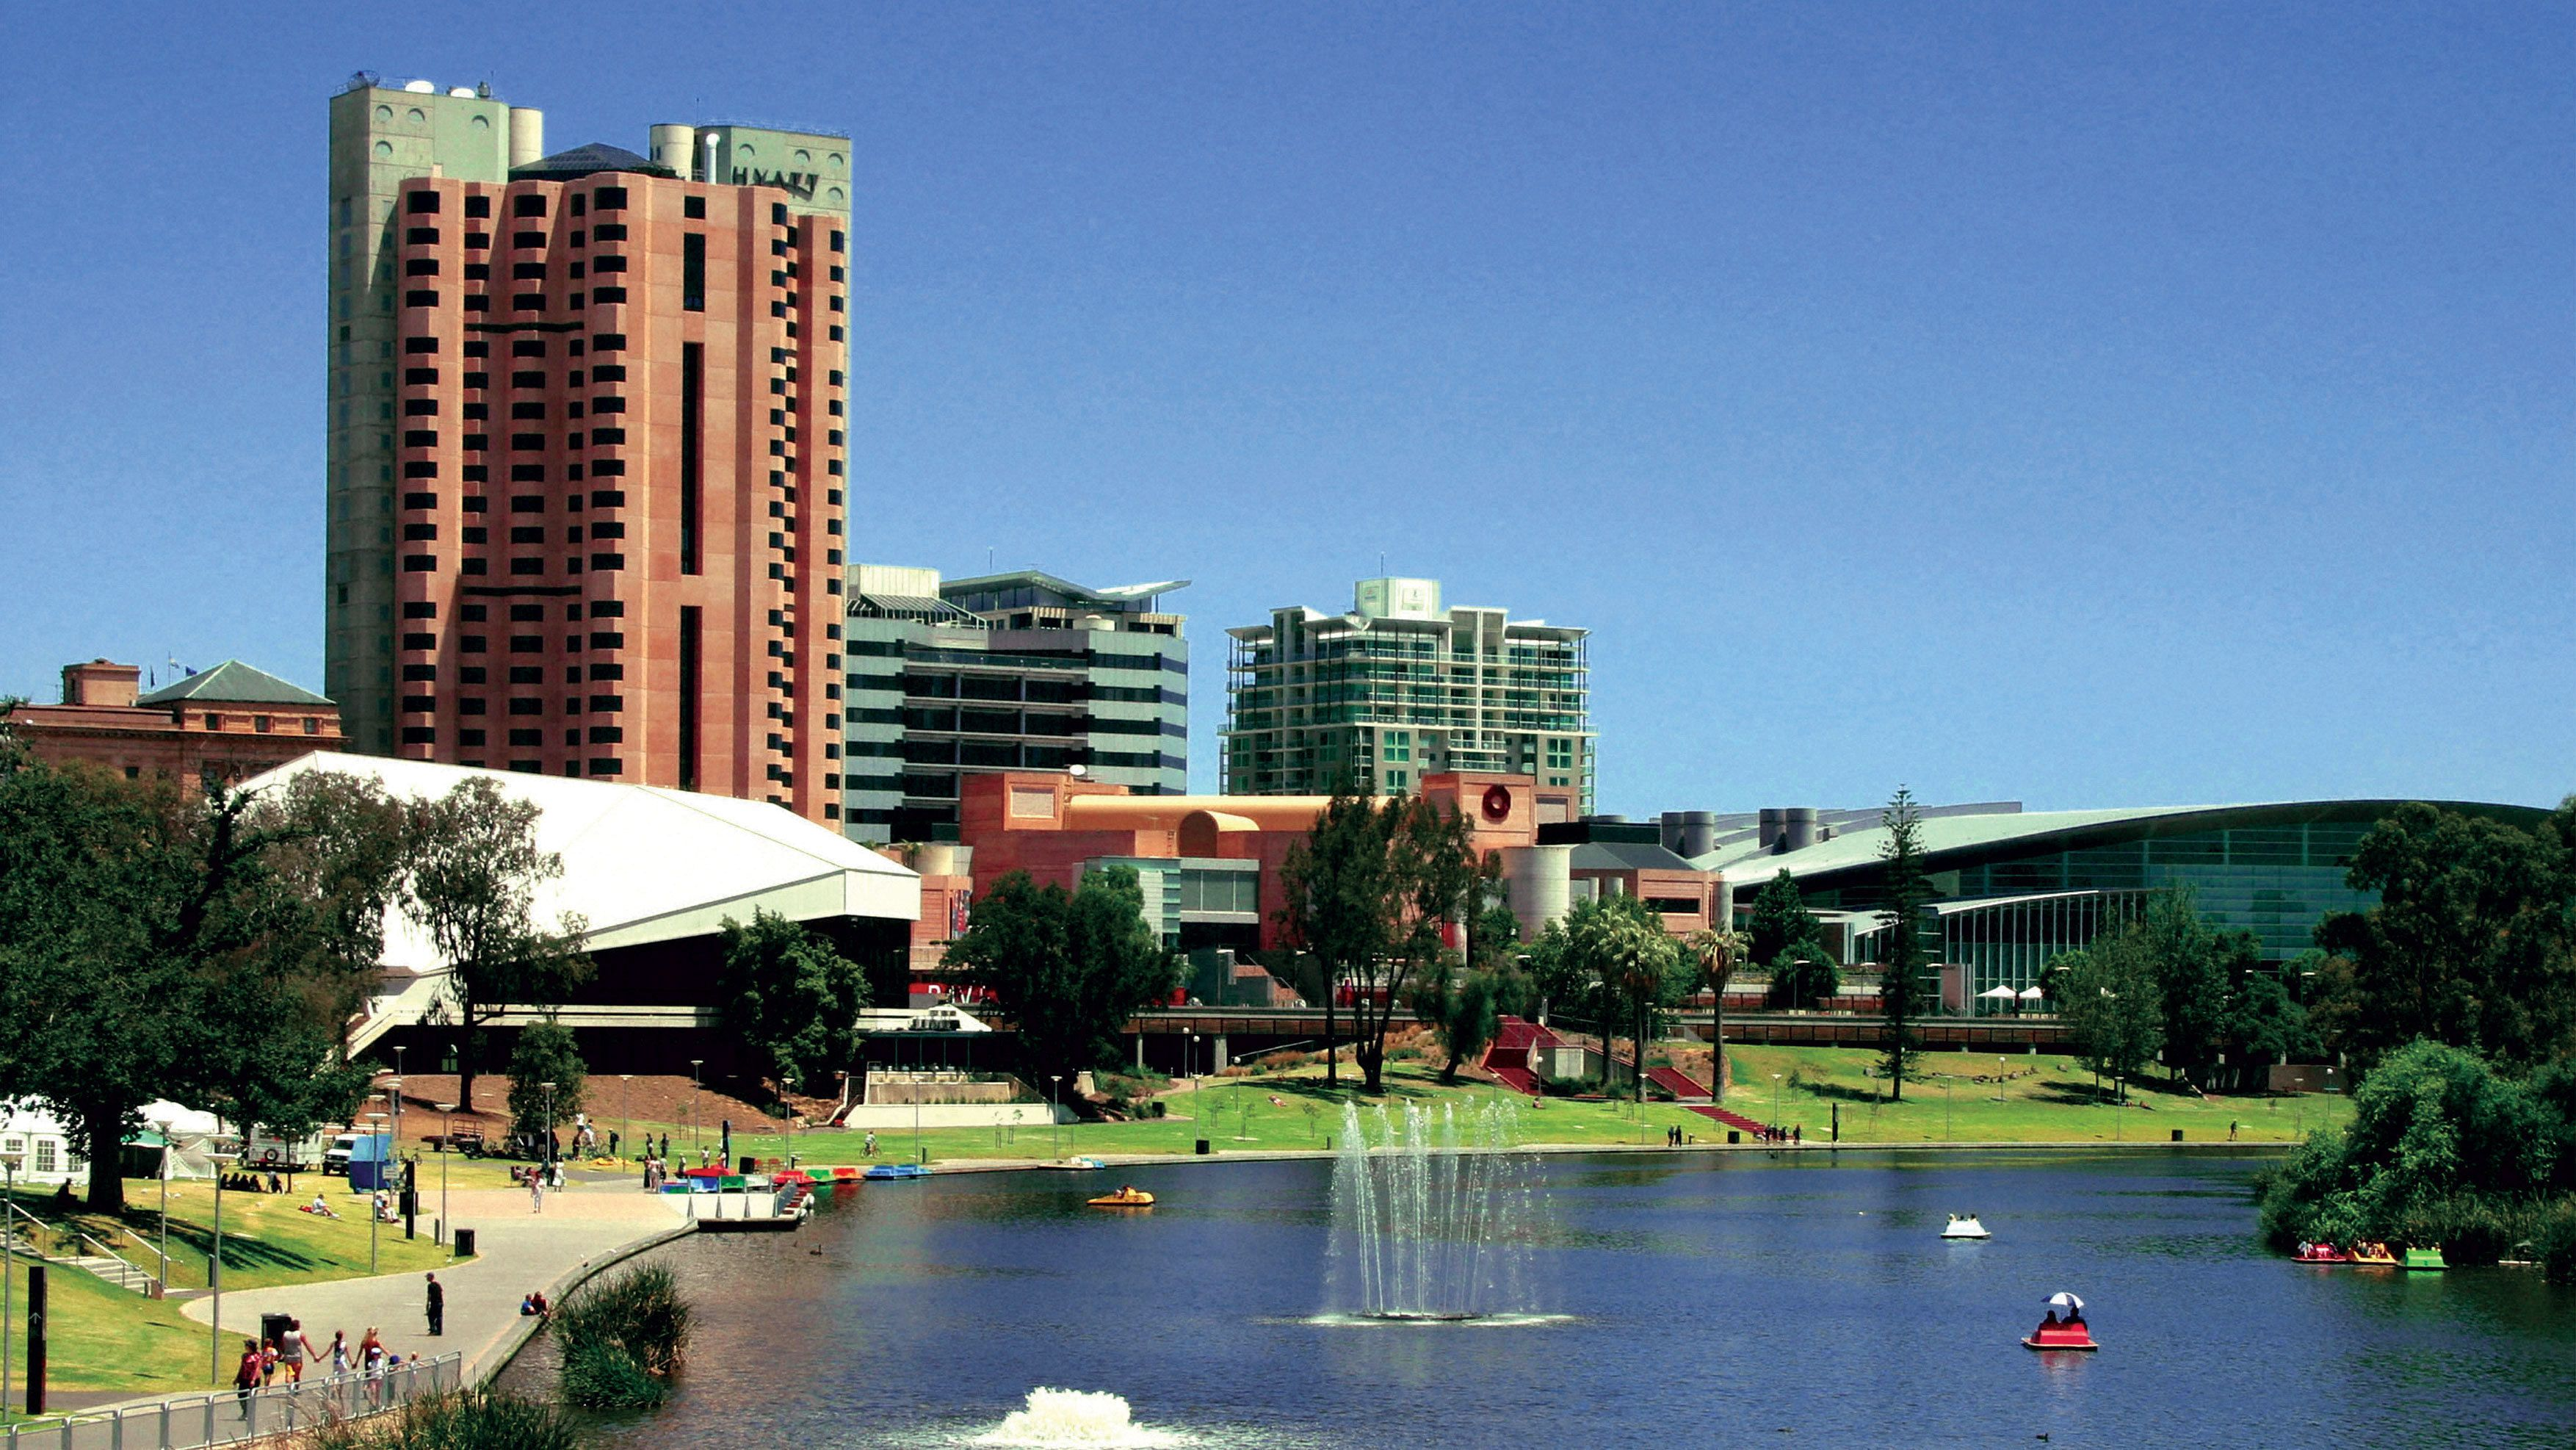 Lake and buildings in Adelaide